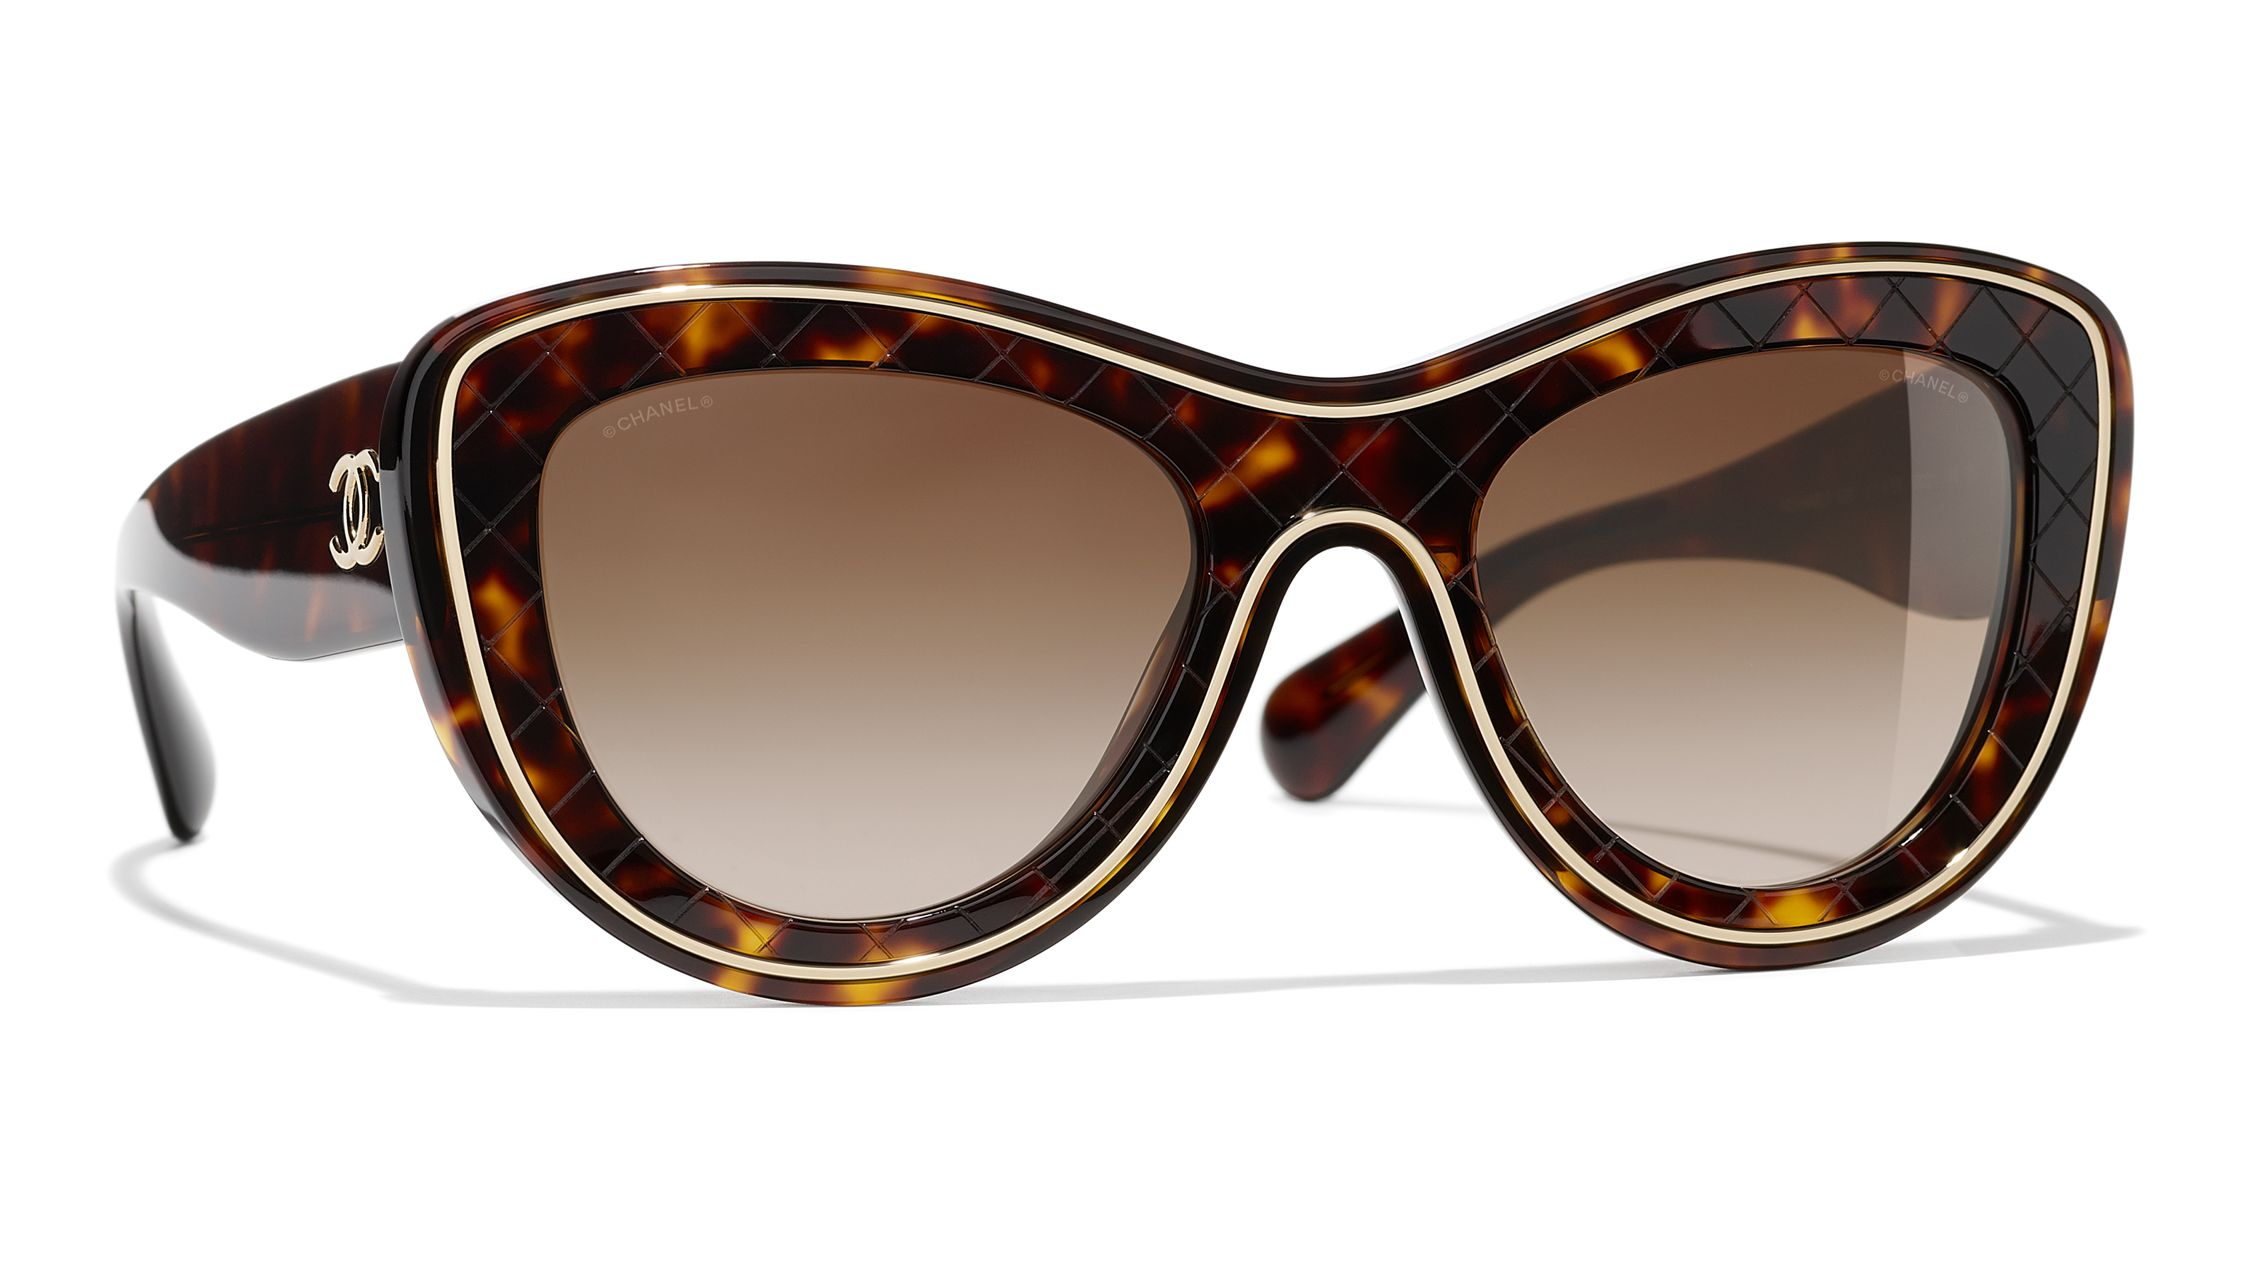 172f1399606ea CHANEL Butterfly Sunglasses CH5397 Havana Brown Gradient at John Lewis    Partners